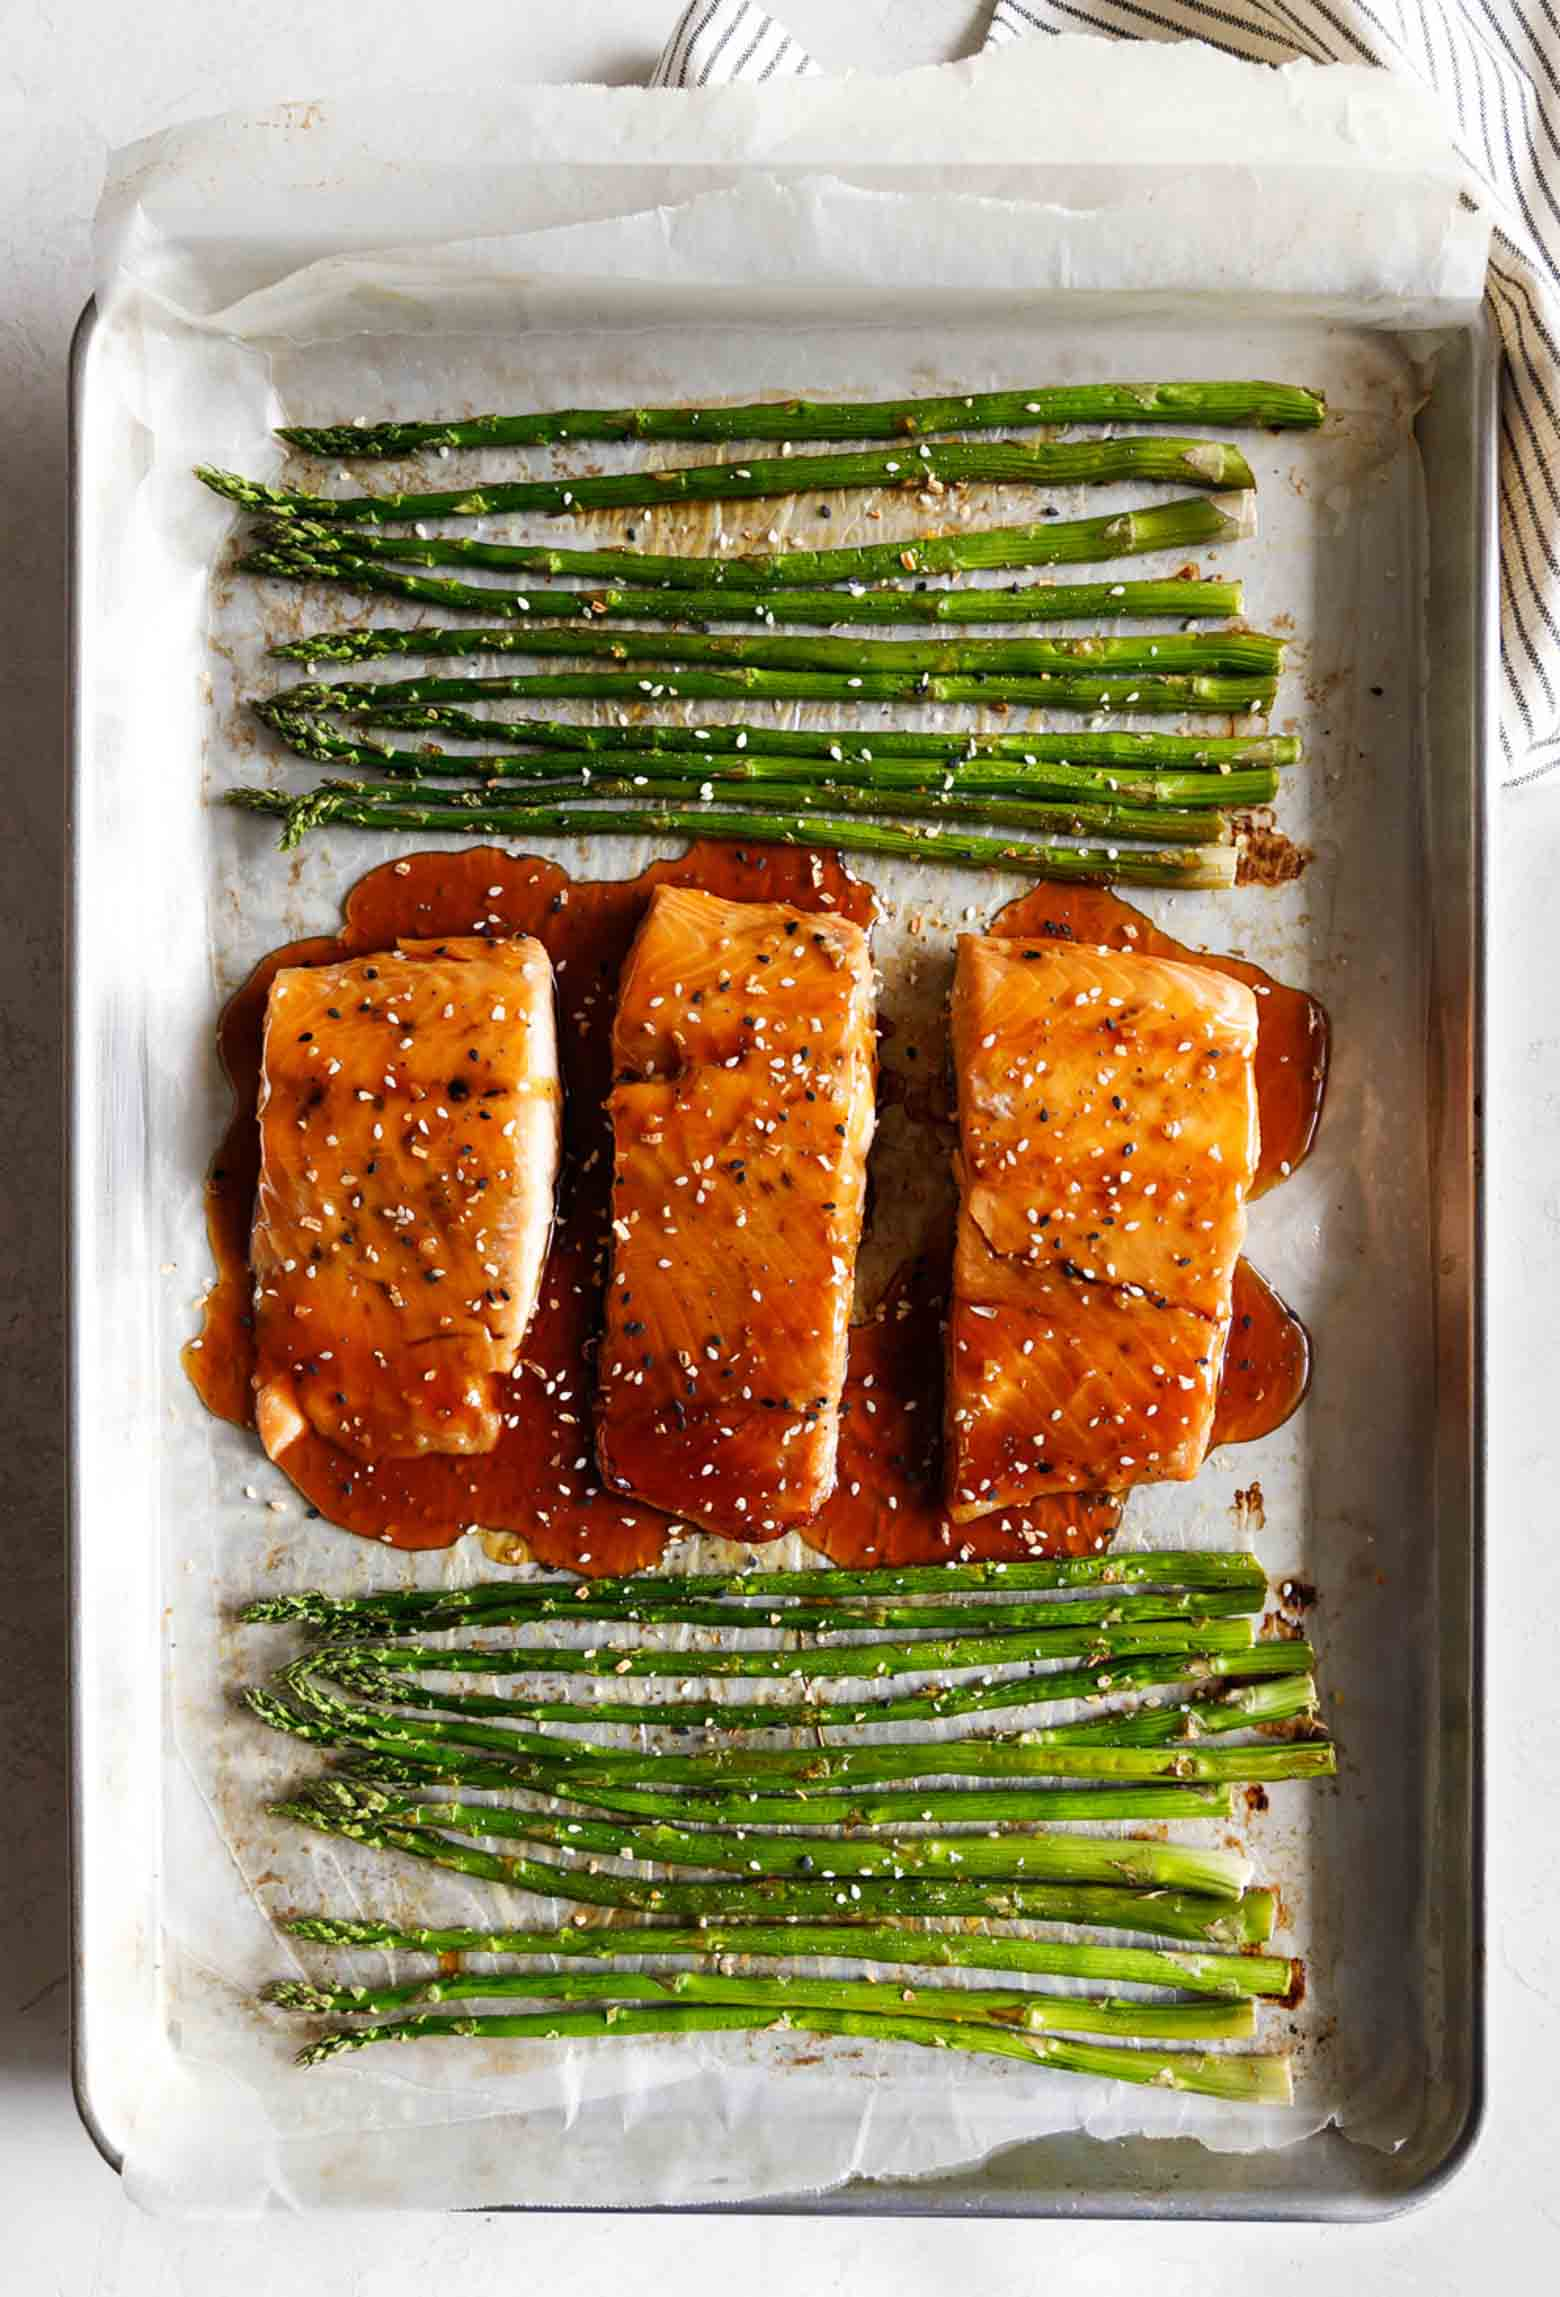 Baked Sesame Glazed Salmon and Asparagus from lecremedelacrumb.com on foodiecrush.com